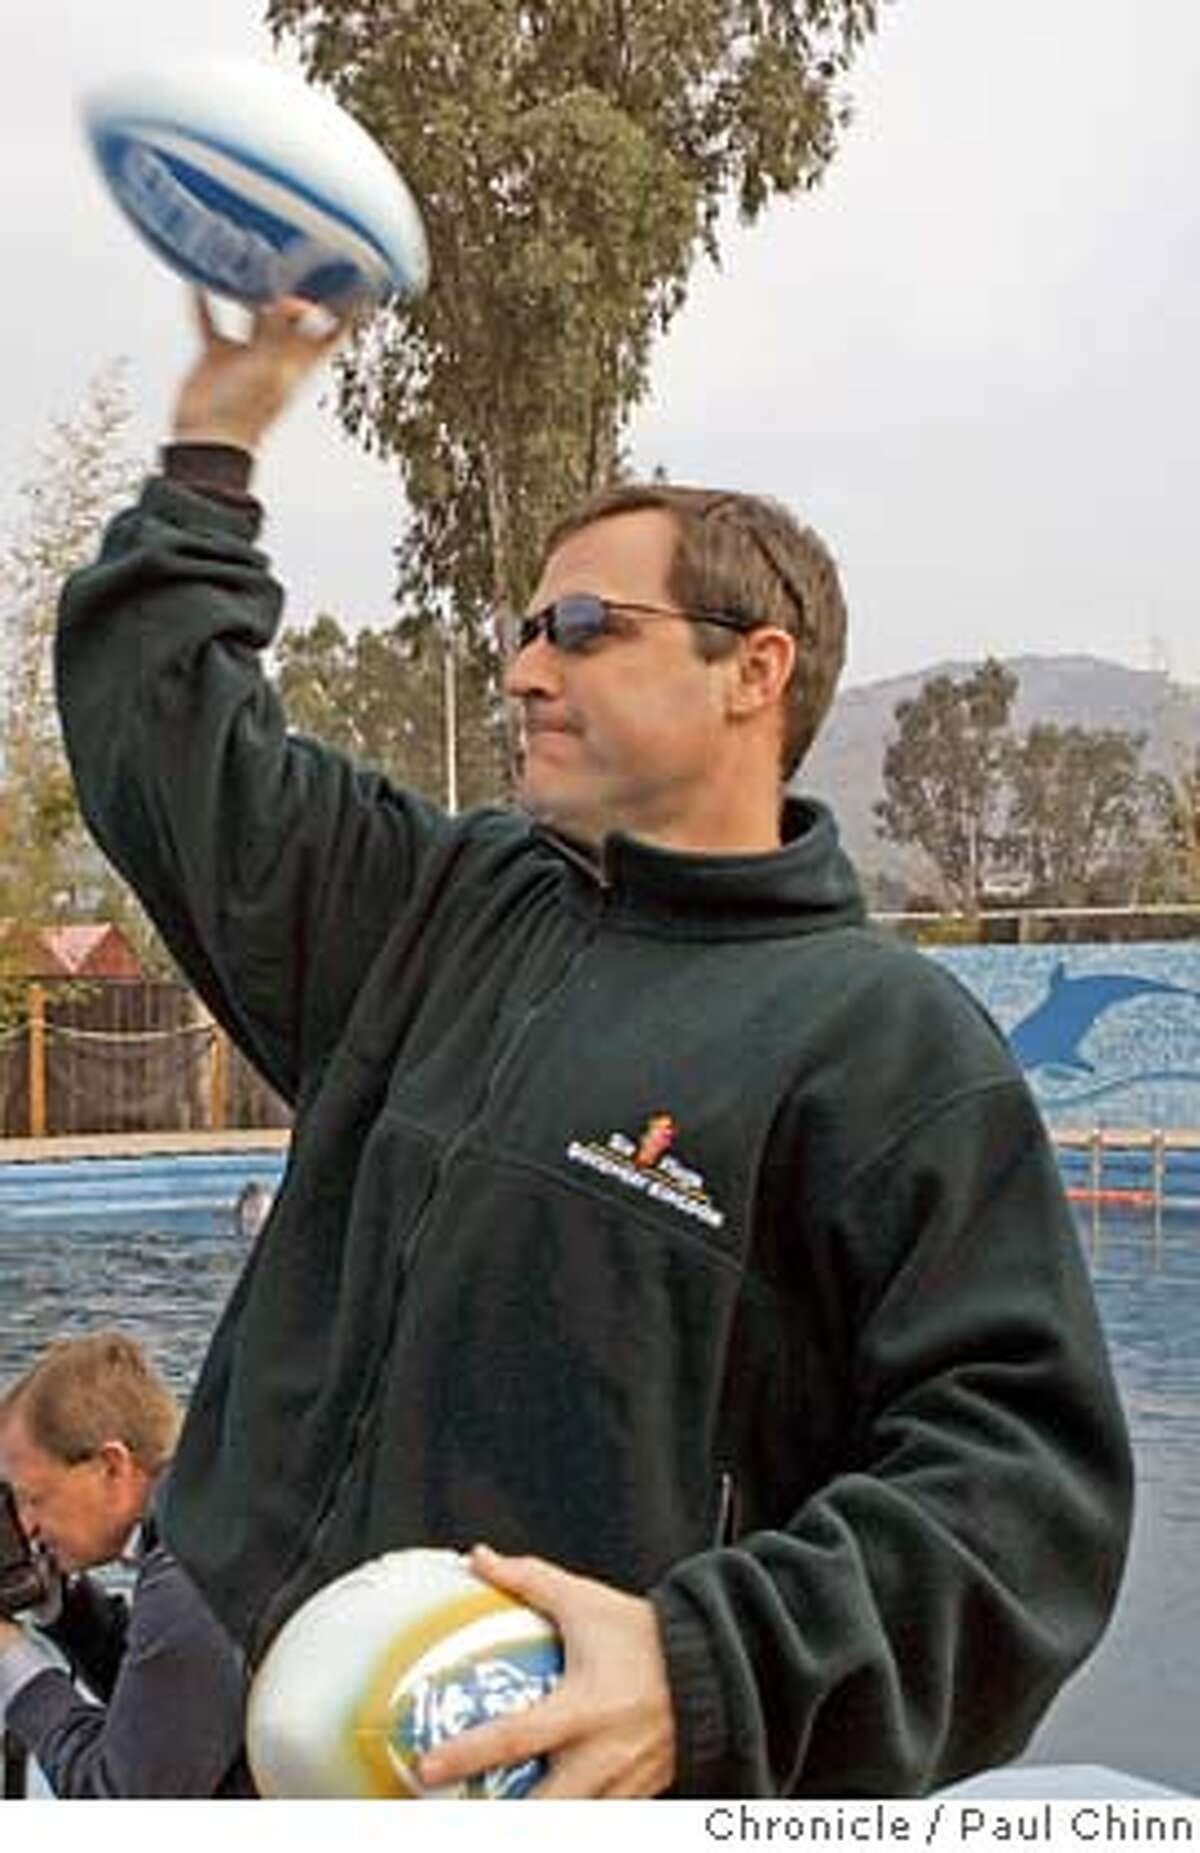 Kirk Smith, a former quarterback at the College of Marin, tosses the footballs into the pool. Merlin, a prognosticating dolphin, has predicted a Super Bowl victory by the Indianapolis Colts after making his selection in his pool at Six Flags Discovery Kingdom amusement park in Vallejo, Calif. on Wednesday, Jan. 31, 2007. Two footballs - one bearing the name of the Colts, the other with the Chicago Bears - were thrown into the pool for him to pick. According to park officials, Merlin has a 75% accuracy rate. PAUL CHINN/The Chronicle **Kirk Smith